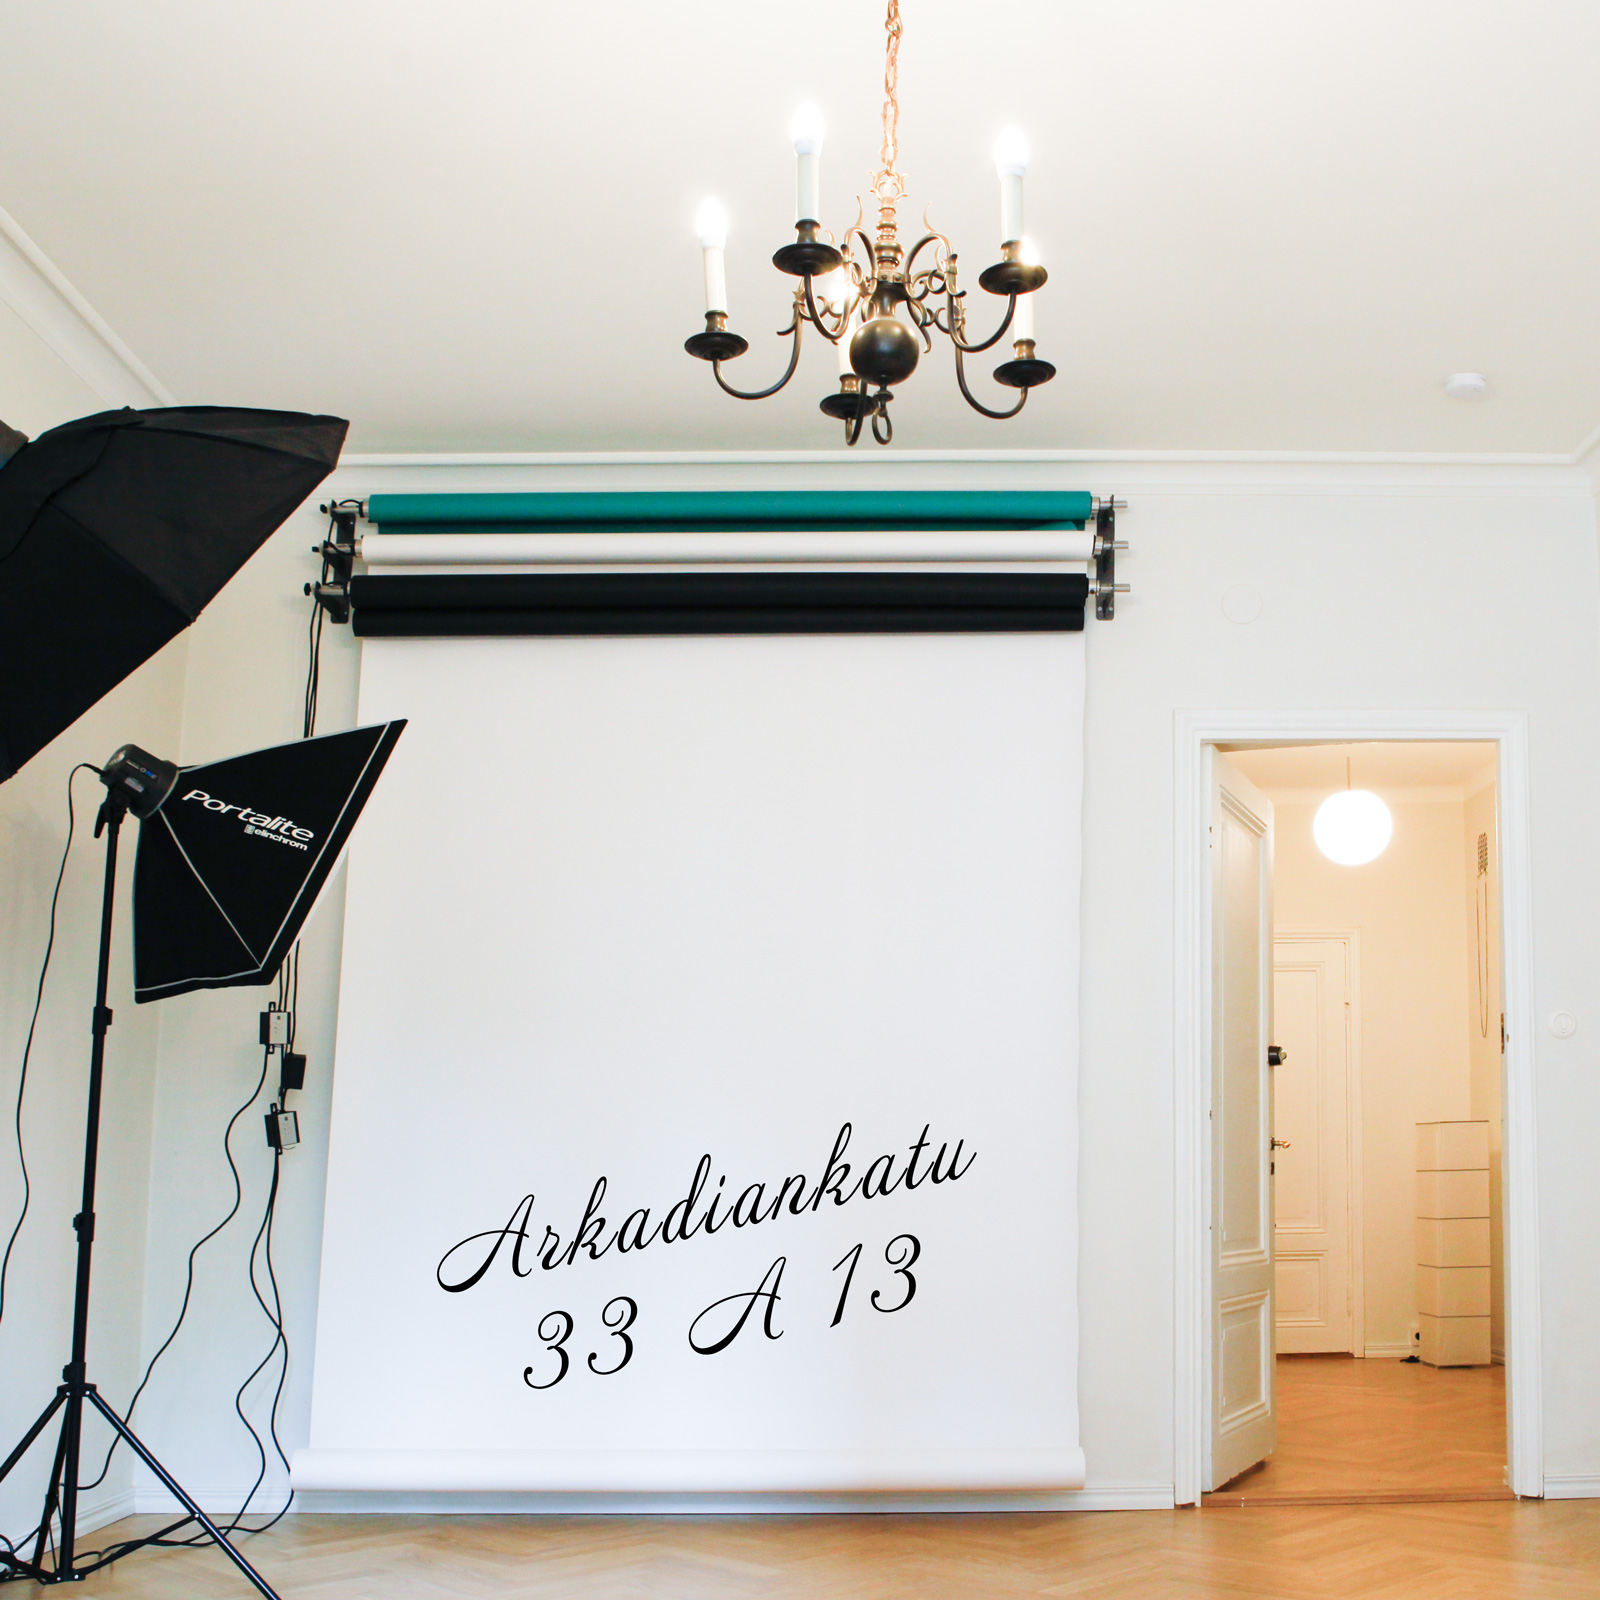 Studio Arkadiankatu